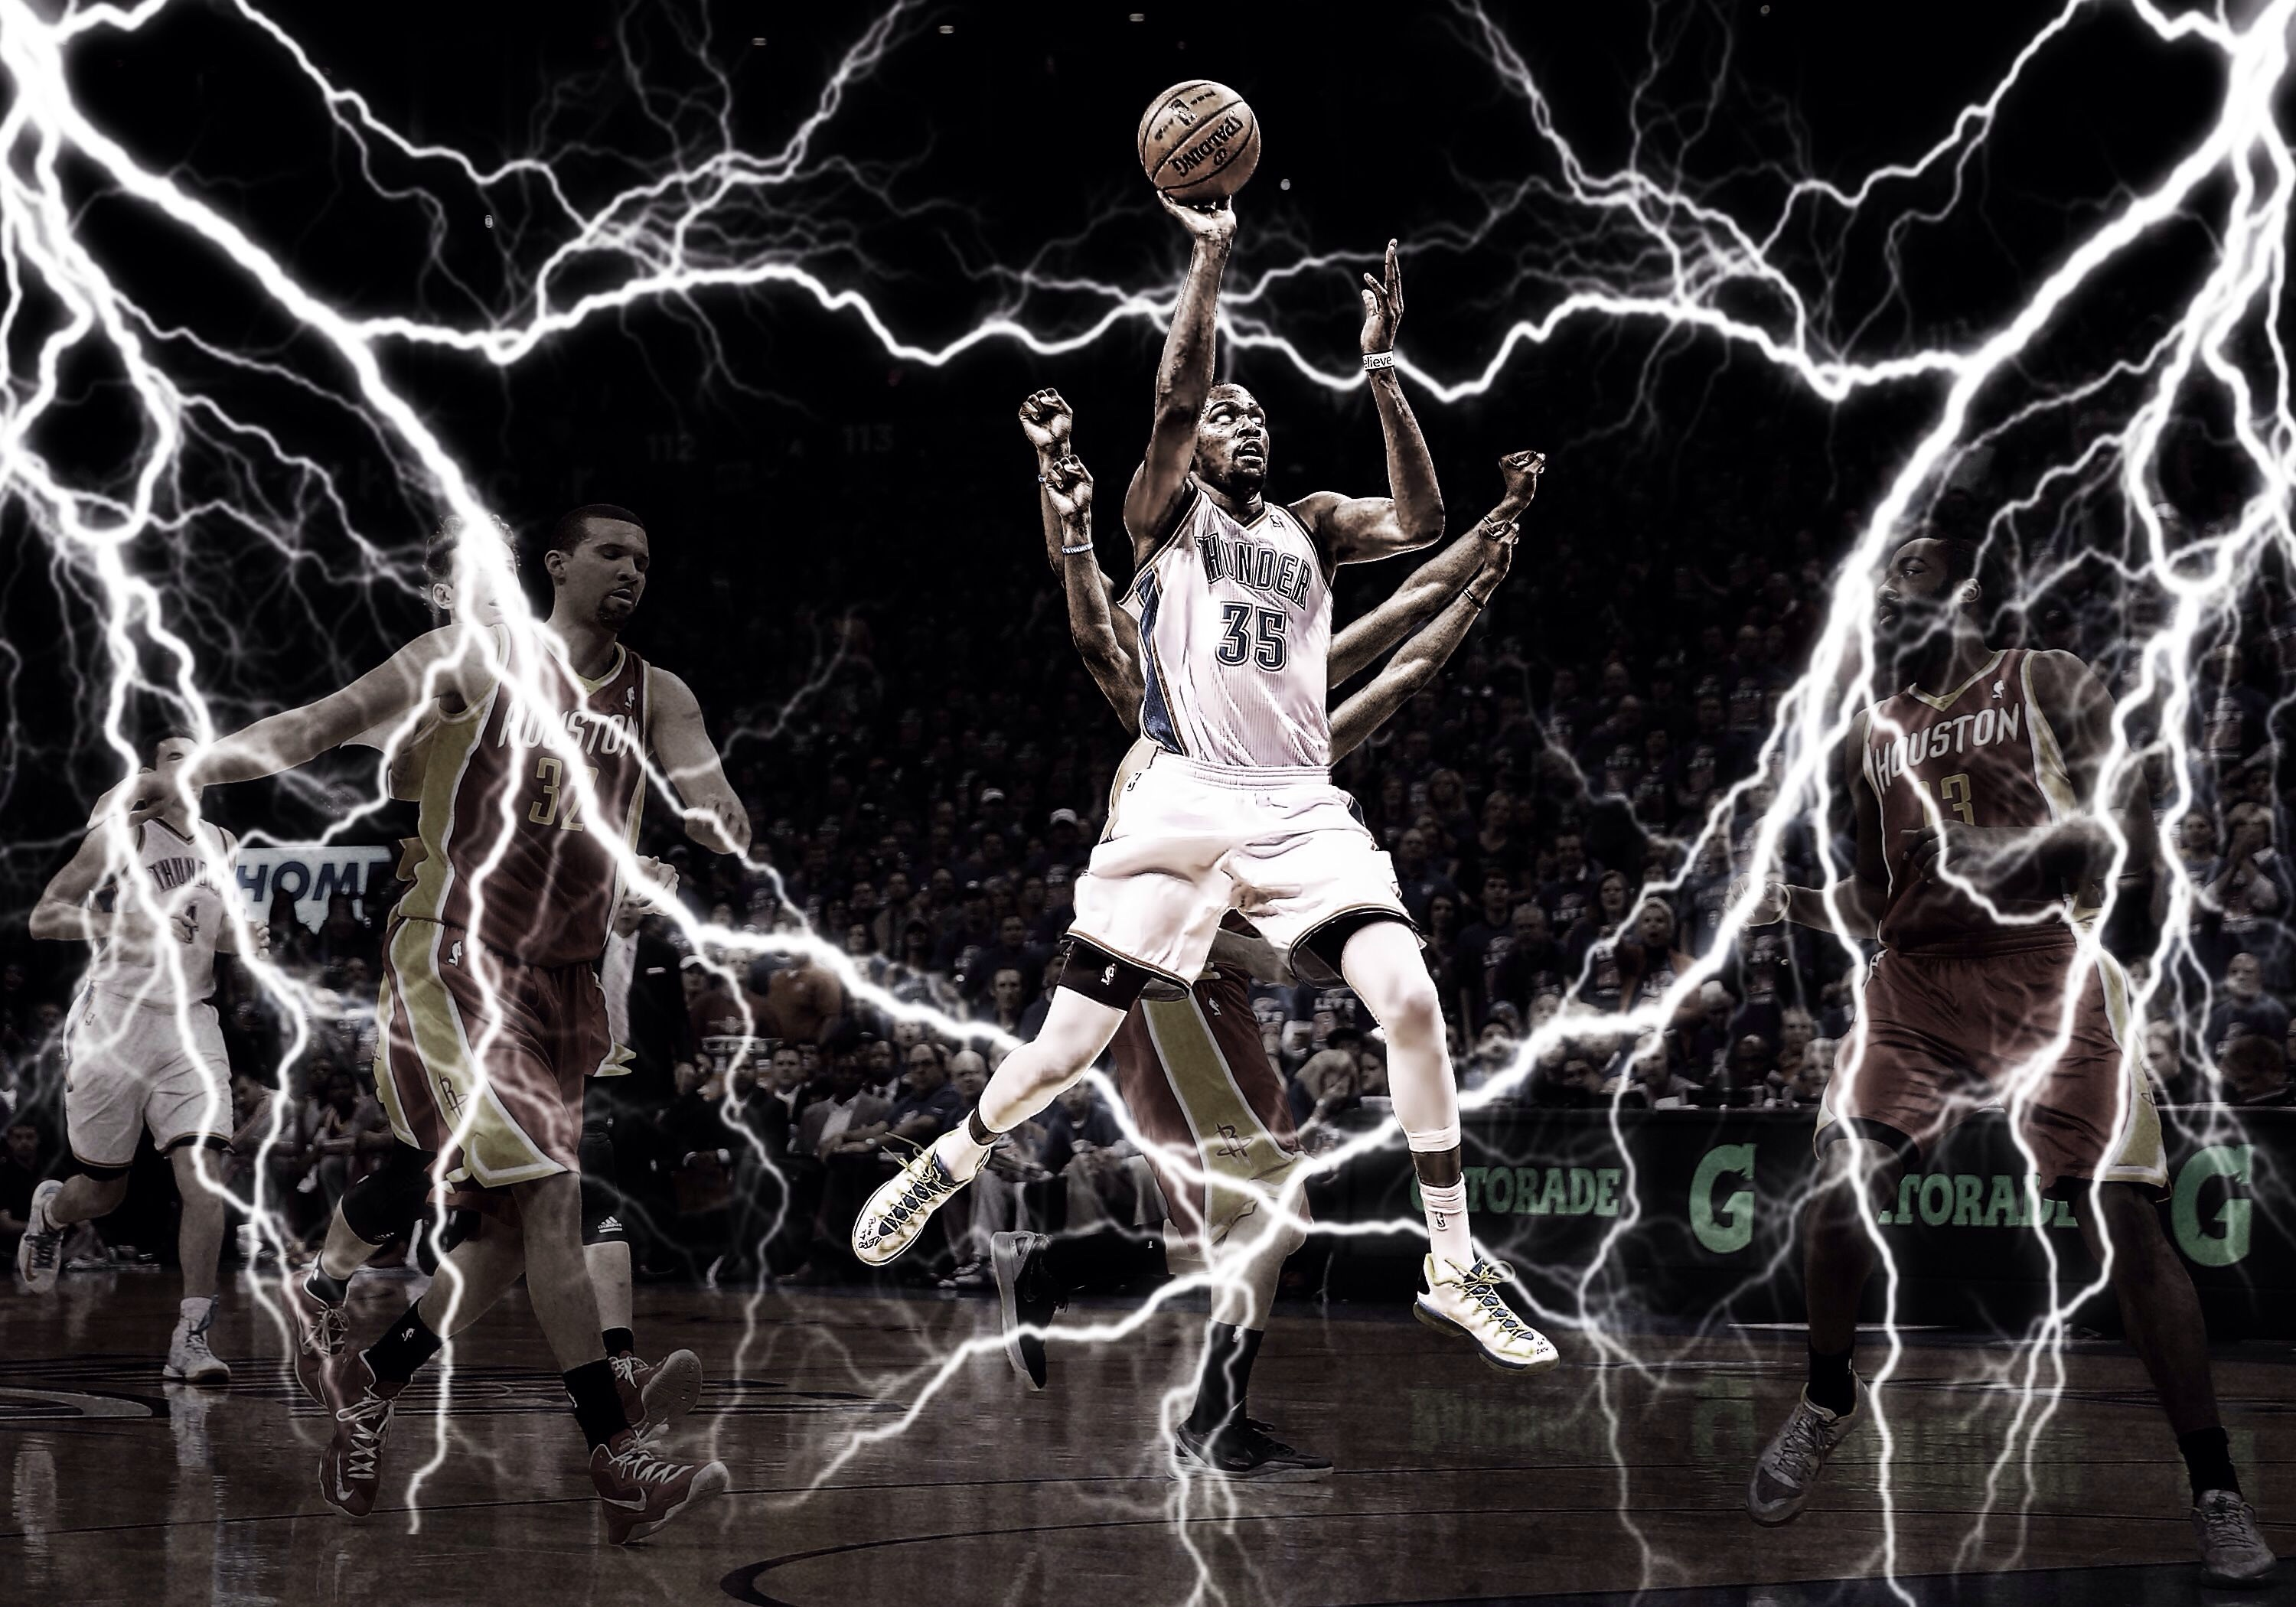 Kevin Durant HD Wallpaper Background Image 3000x2100 ID 3000x2100